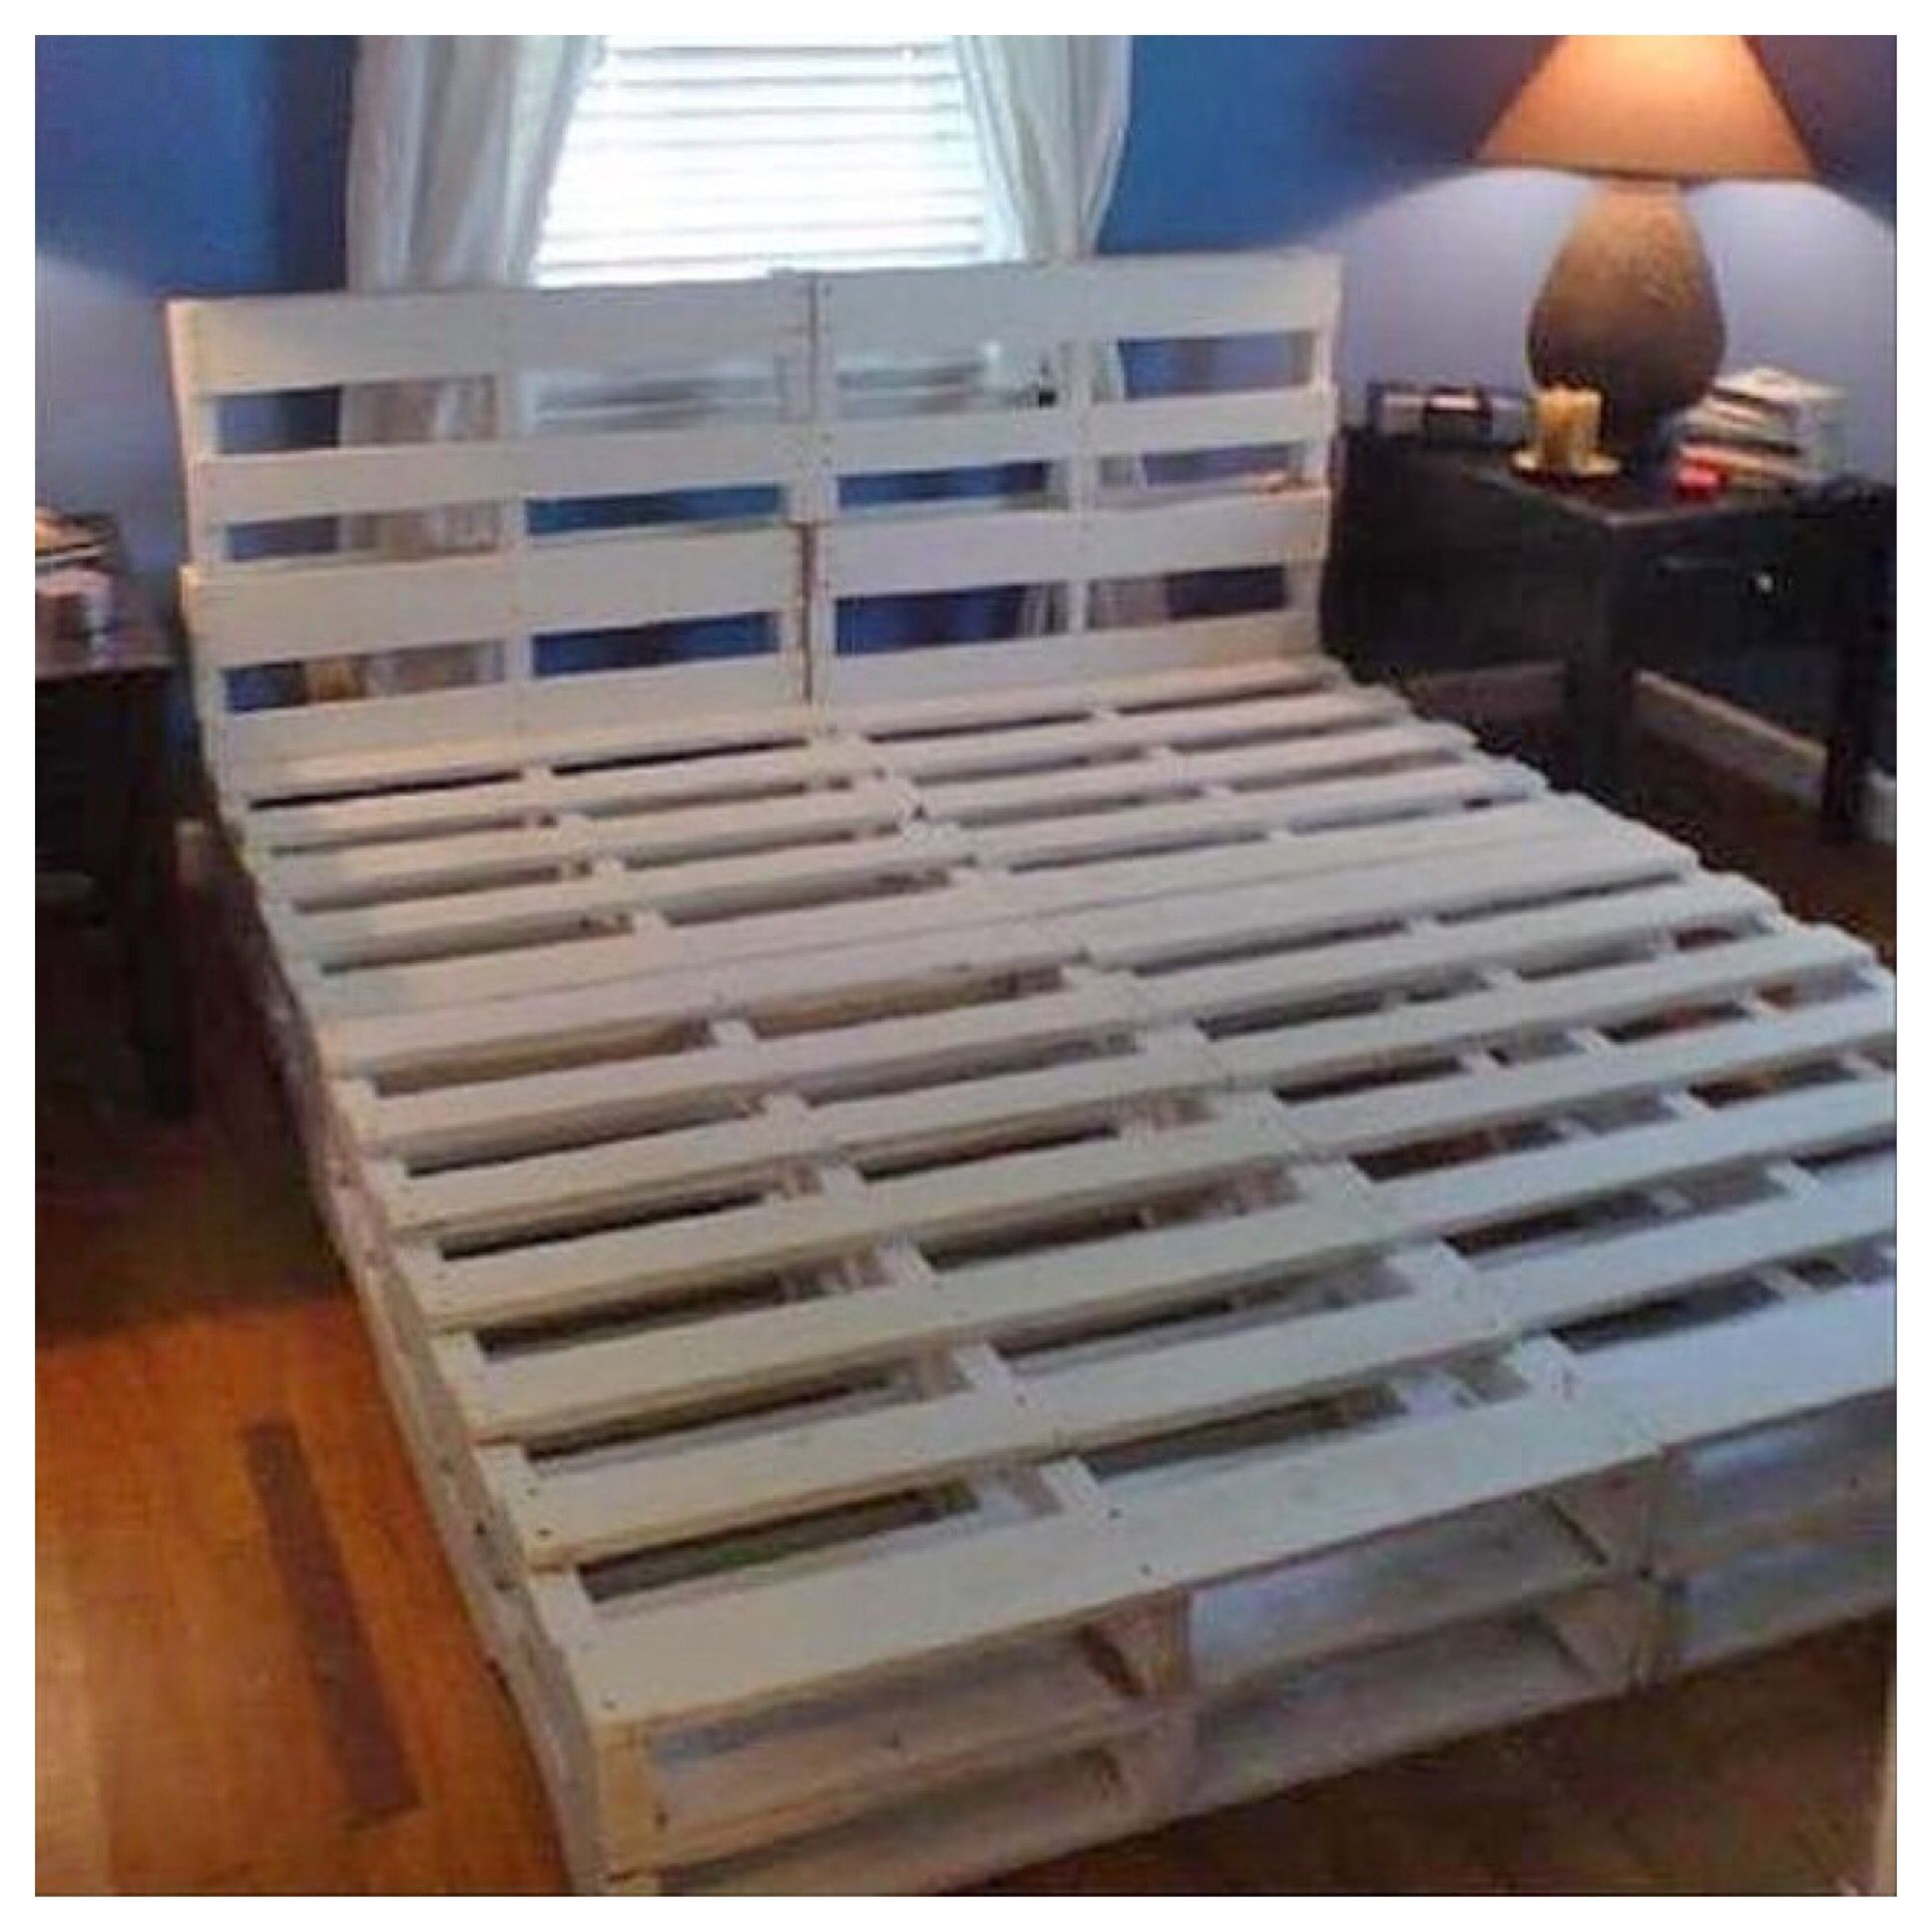 Skid Bed Affordable With Style Pallet Bed Frame Diy Diy Pallet Bed Diy Bed Frame